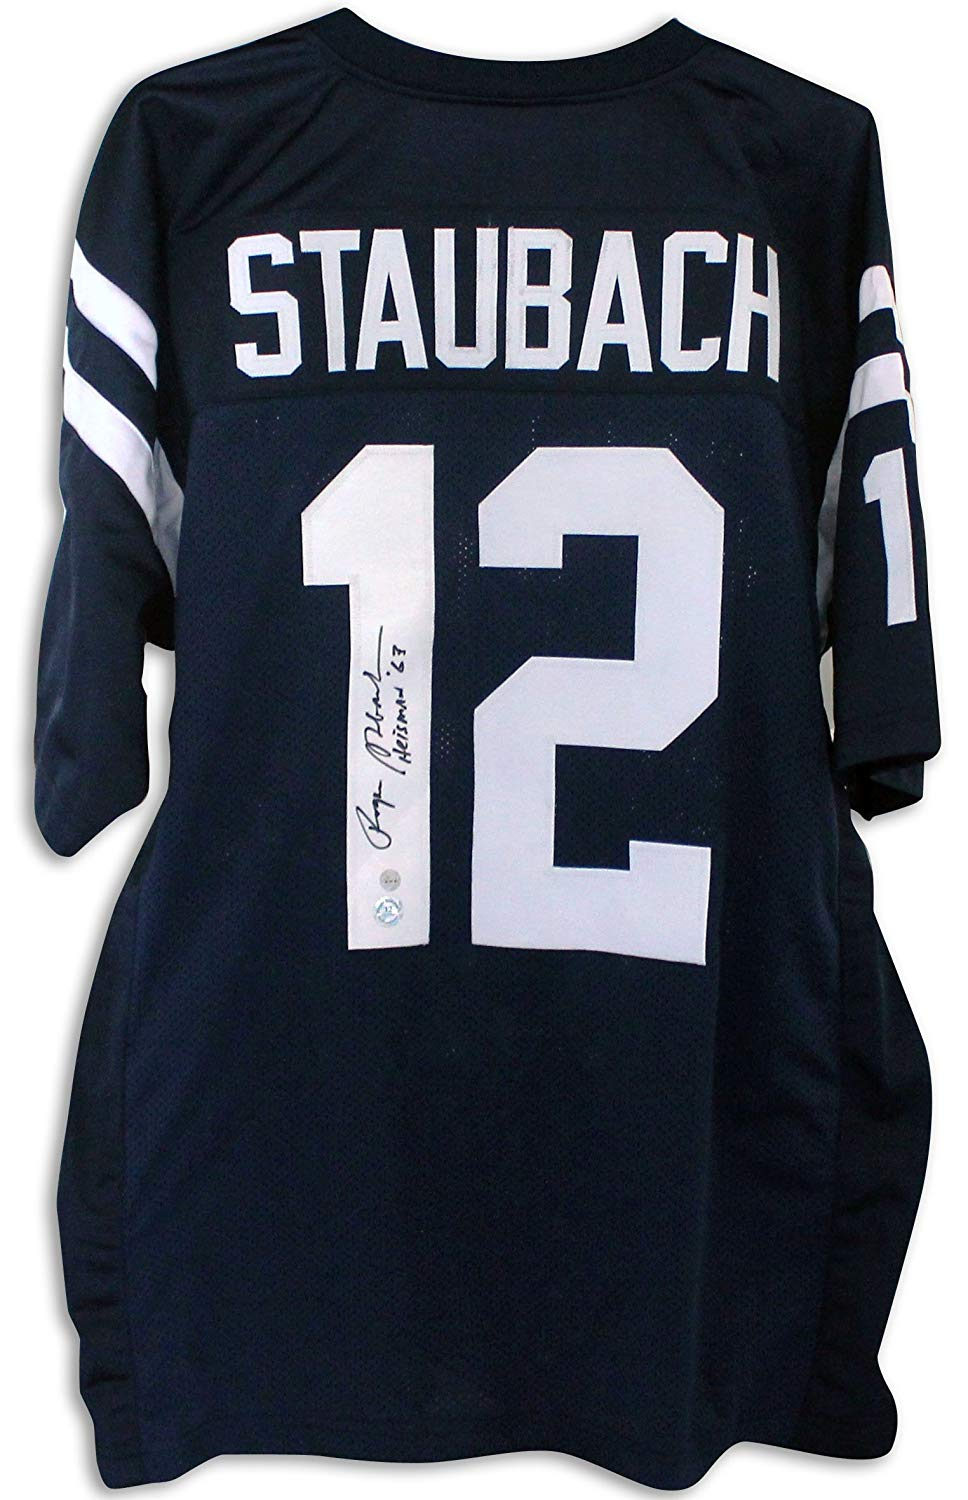 0f81b10cb93 Get Quotations · Roger Staubach US Naval Academy Autographed Blue Jersey  Inscribed